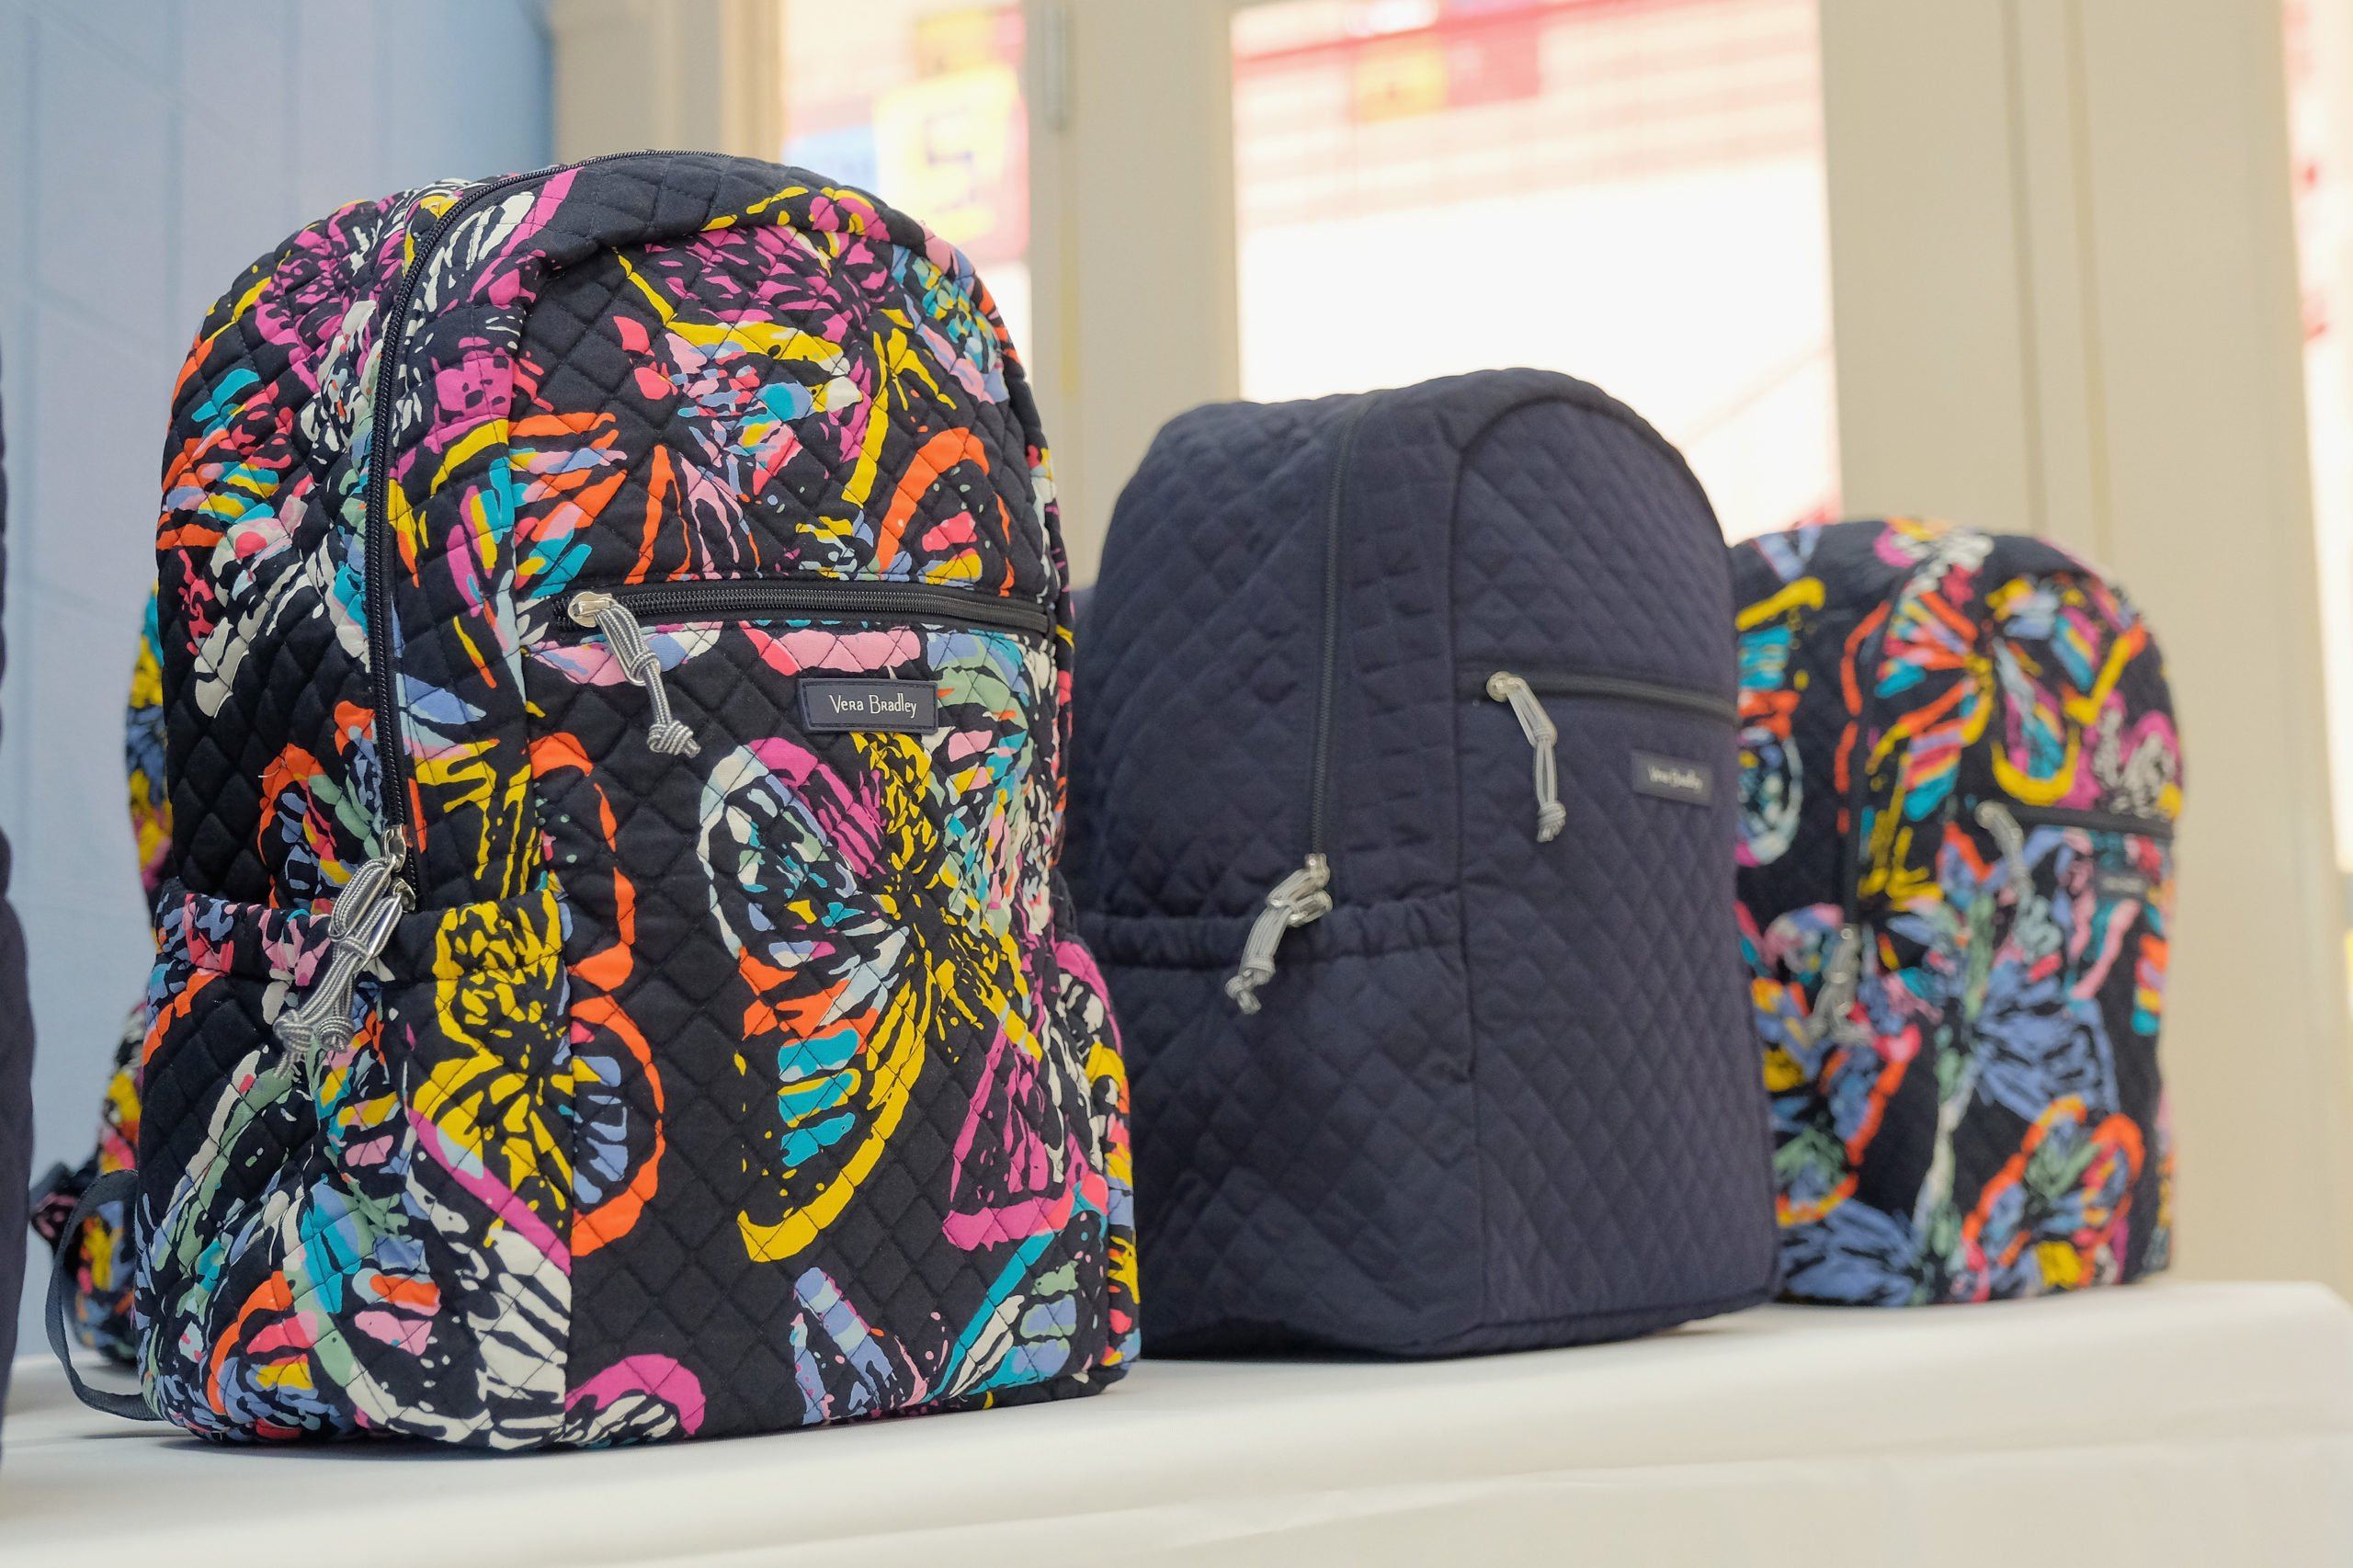 NASHVILLE, TN - AUGUST 27: Backpacks seen during Vera Bradley x Blessings In A Backpack giveaway and carnival philanthropy tour on August 27, 2018 in Nashville, Tennessee. (Photo by Jason Kempin/Getty Images for Vera Bradley)